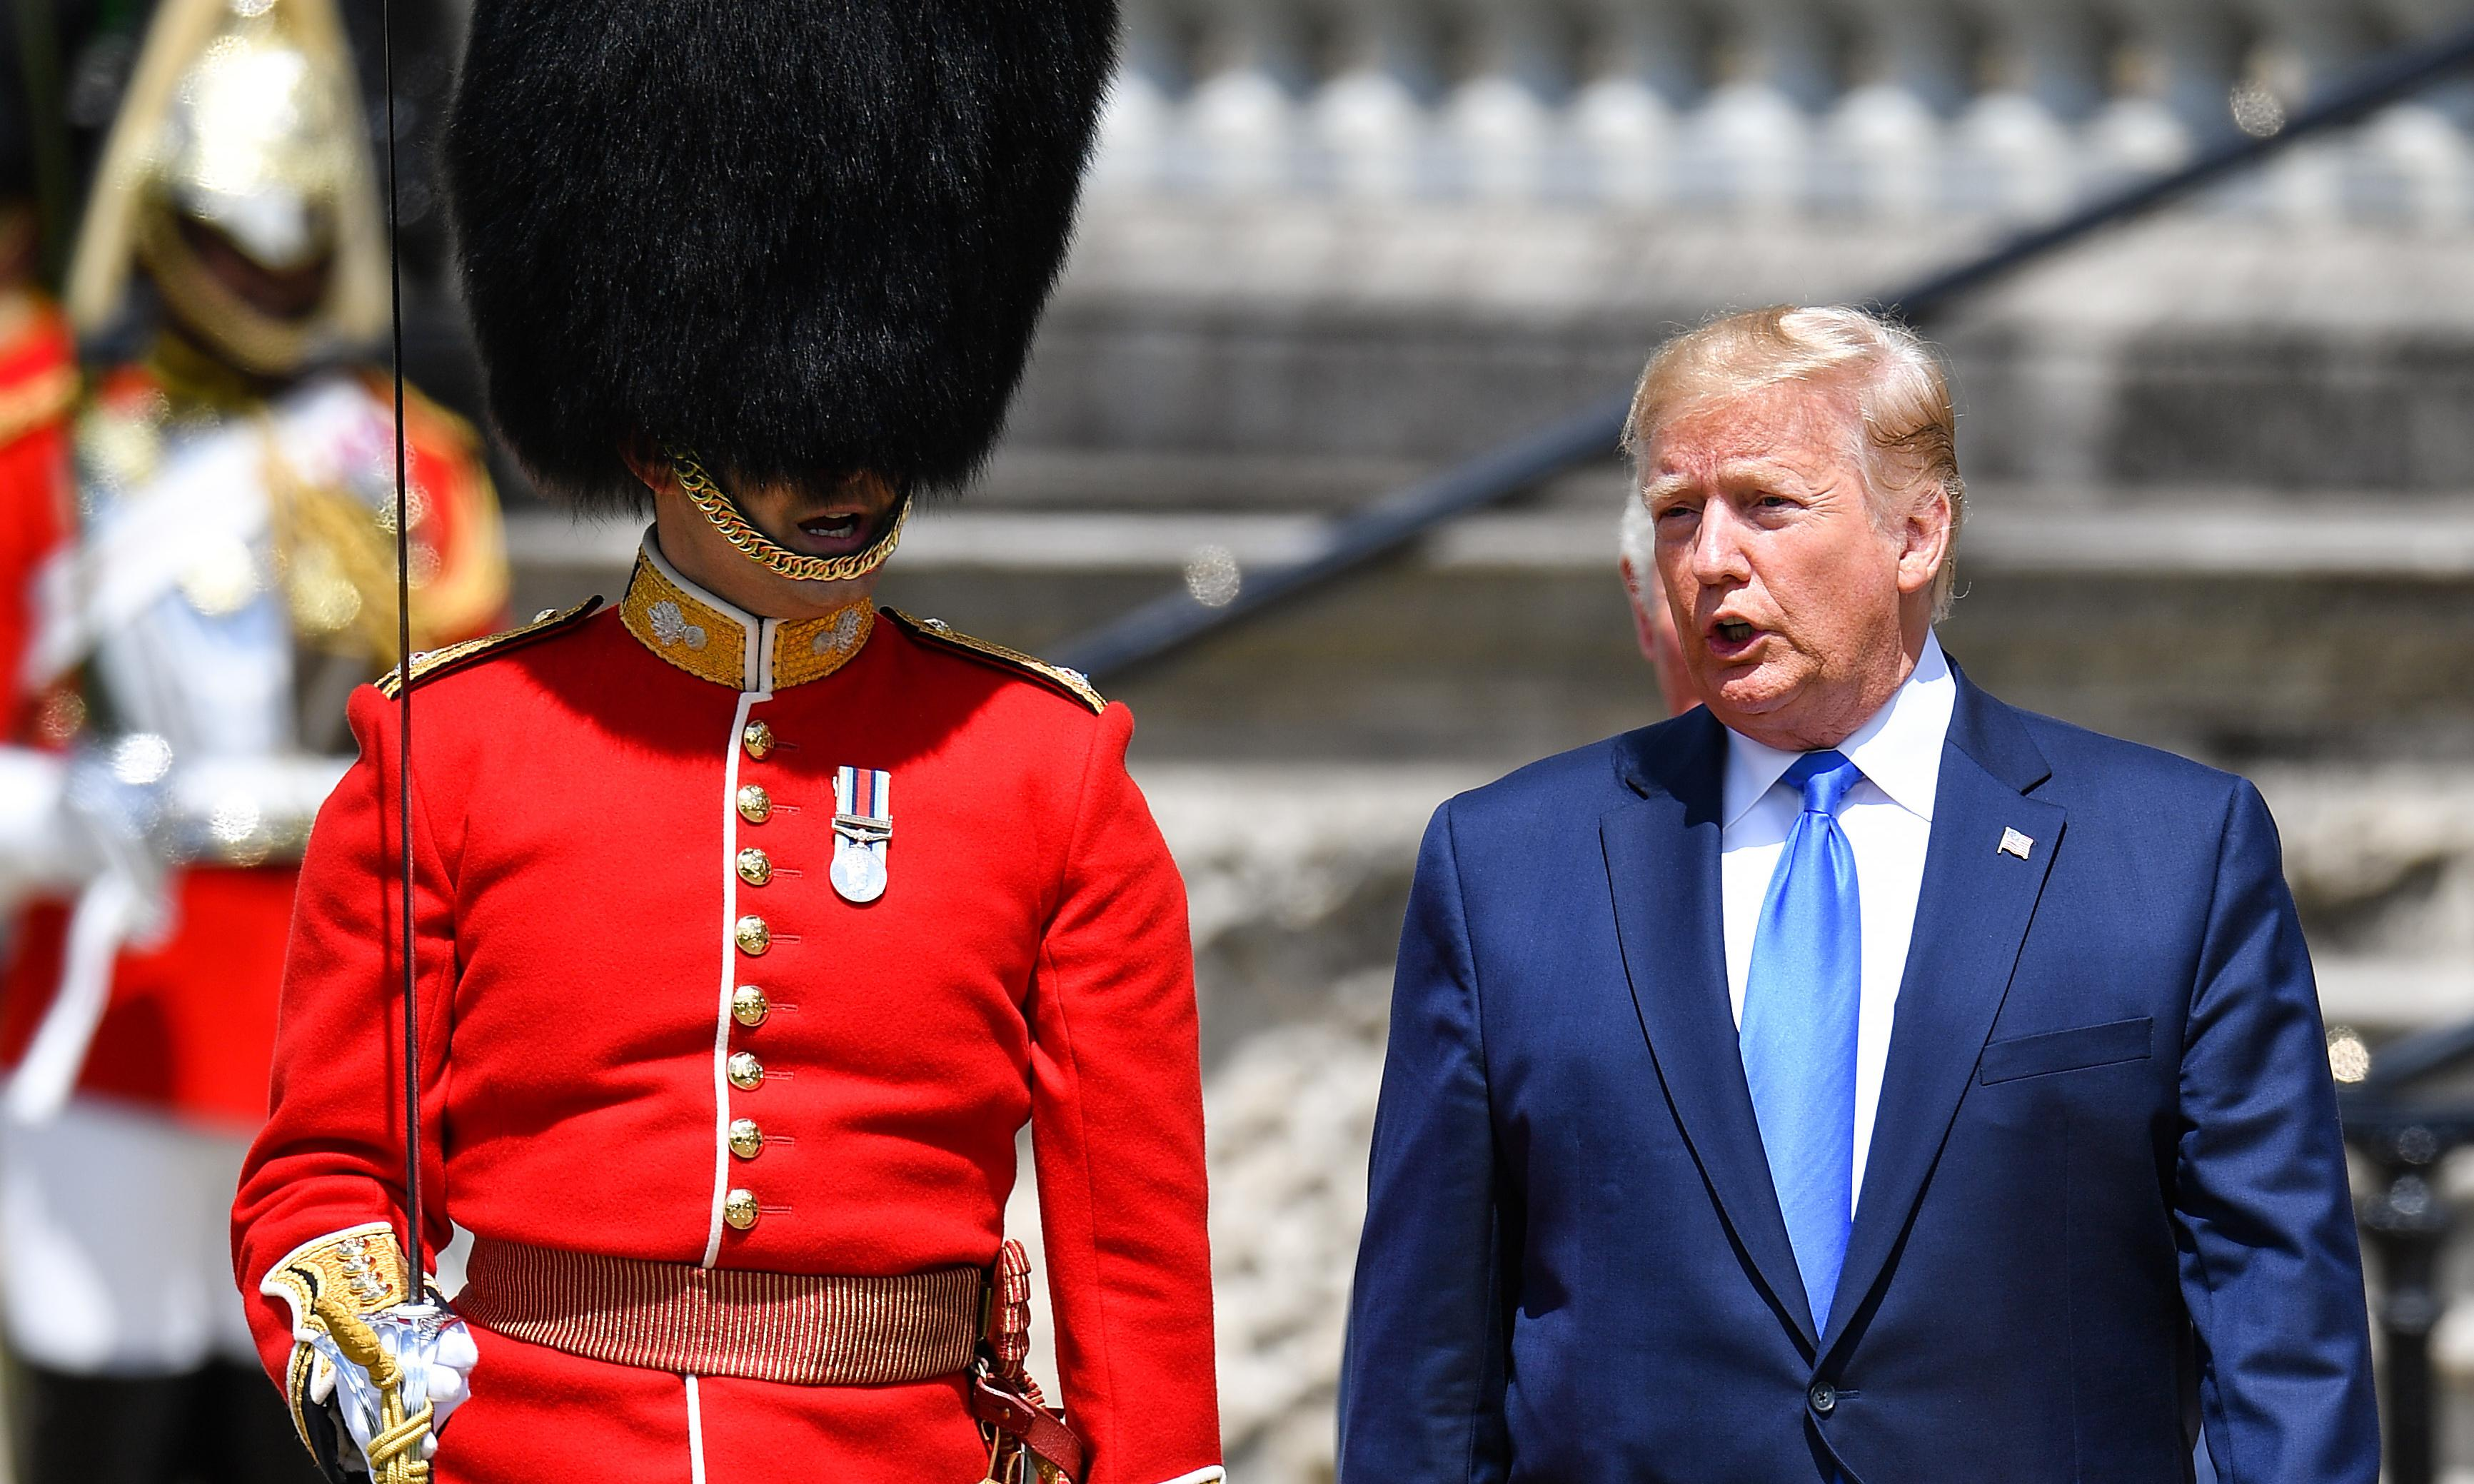 An absolute state of a visit: what the Trump and Windsor snapshots tell us